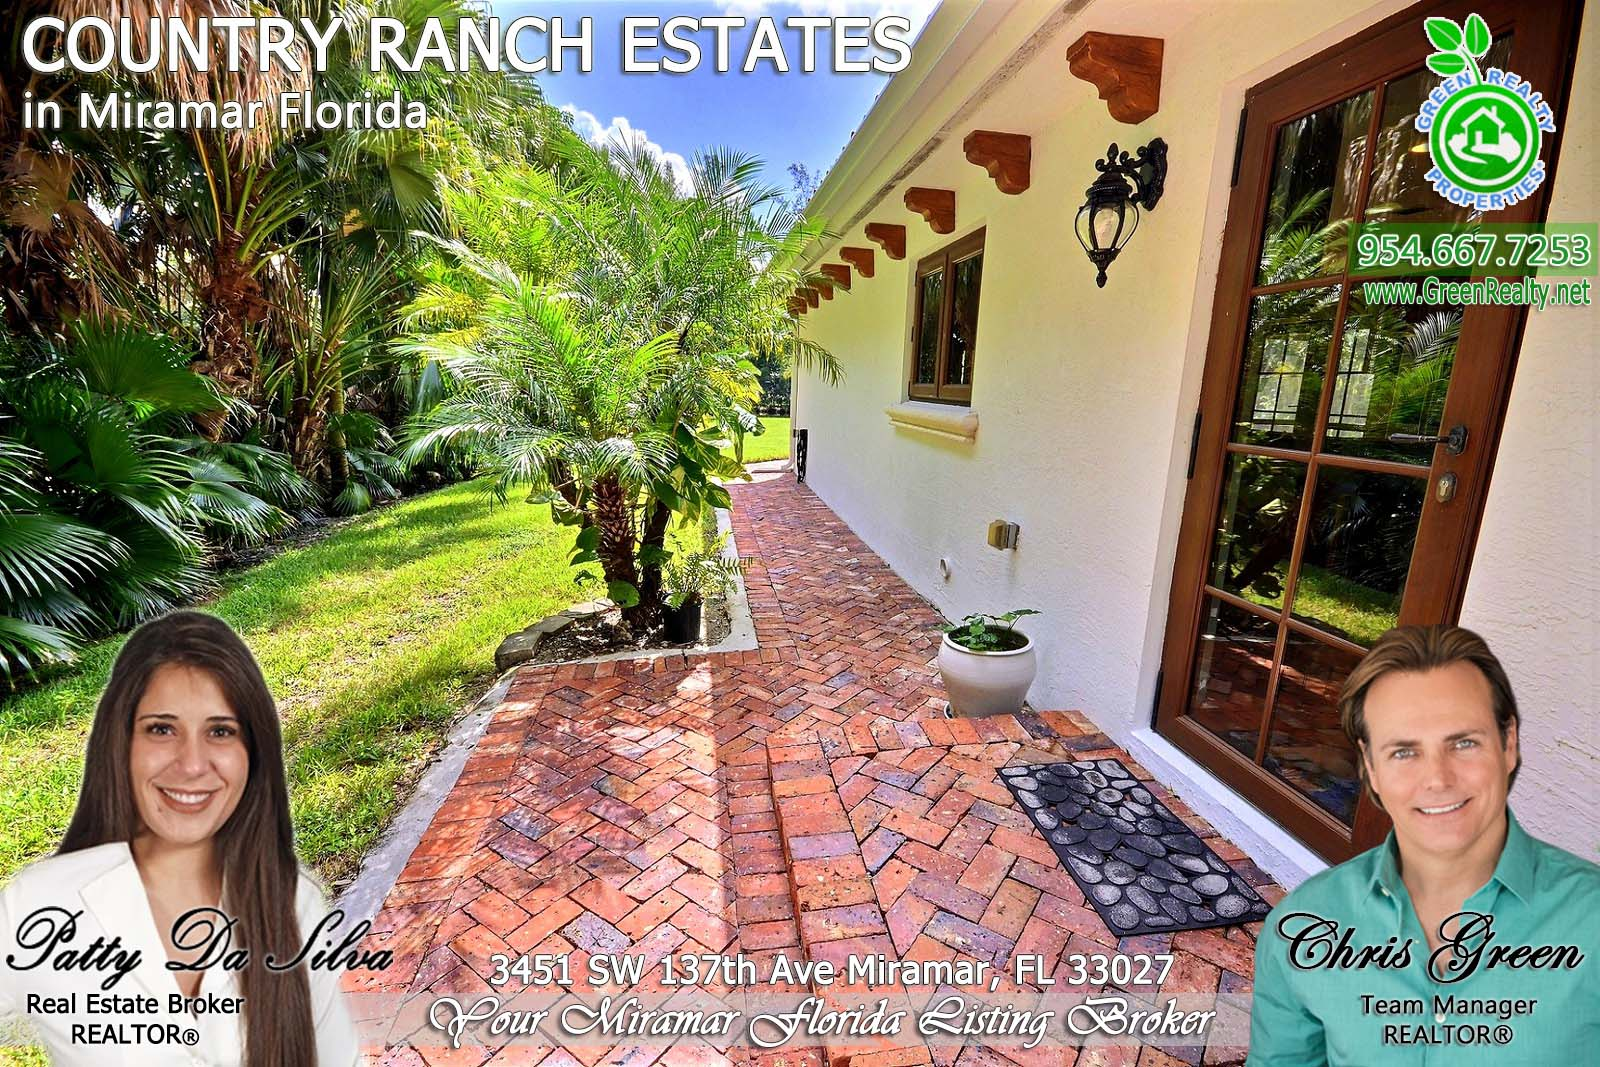 50 Country Ranch Estates Luxury Home